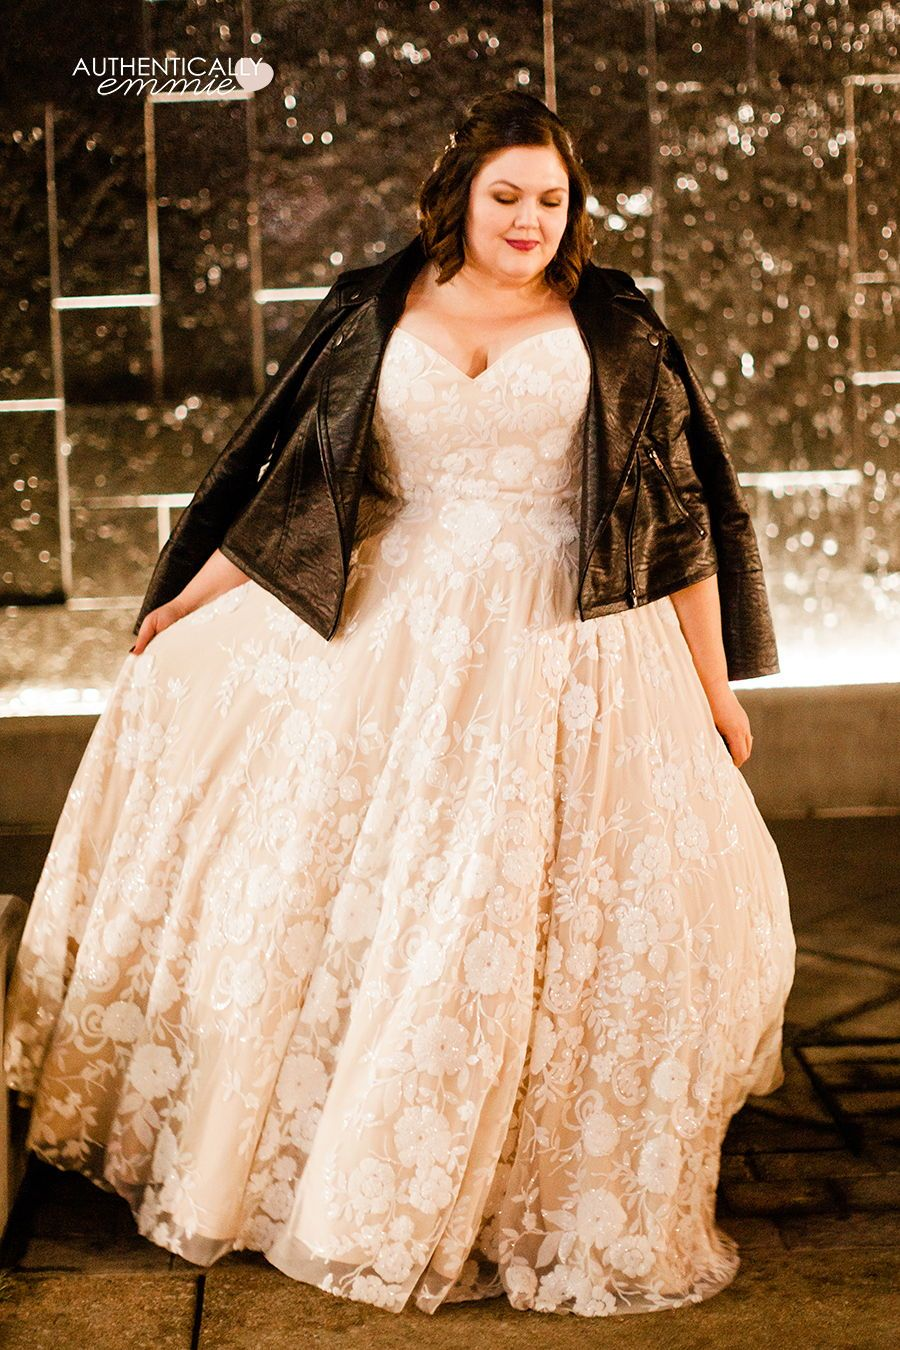 Pin On Authentically Emmie Plus Size Fashion And Lifestyle Blogger [ 1350 x 900 Pixel ]